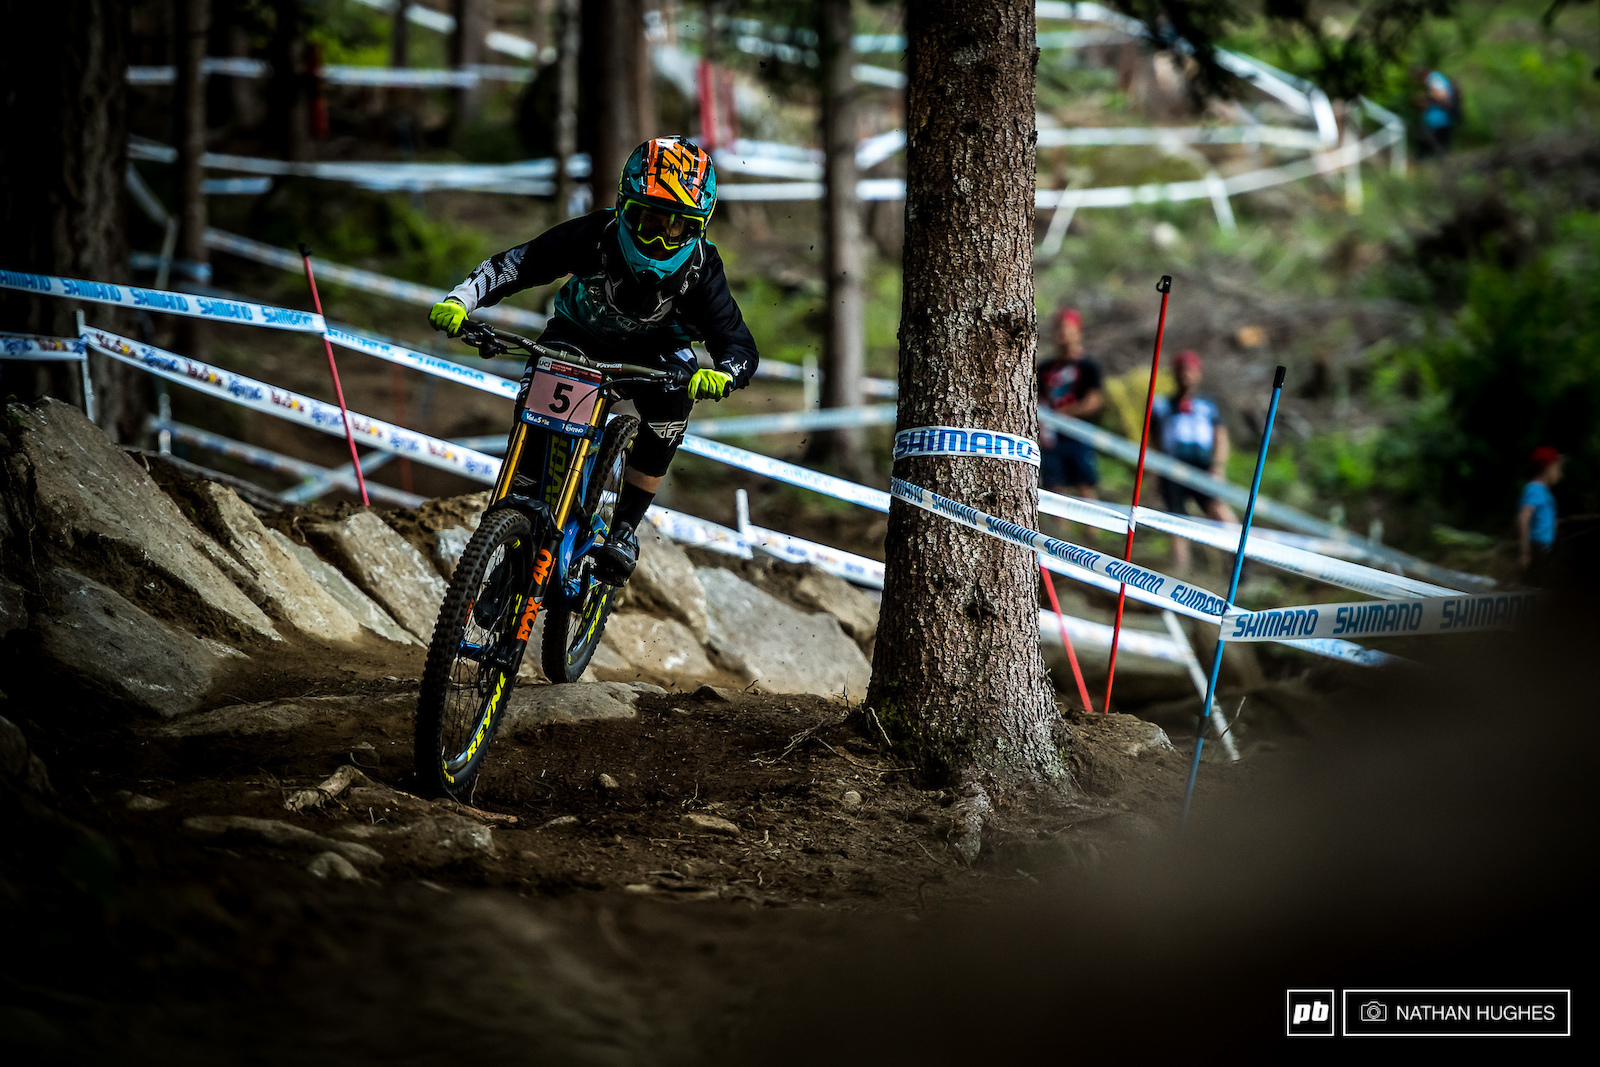 A crash for Emilie Siegenthaler put her way back but expect her to come back strong for finals and claim her place on the overall podium.